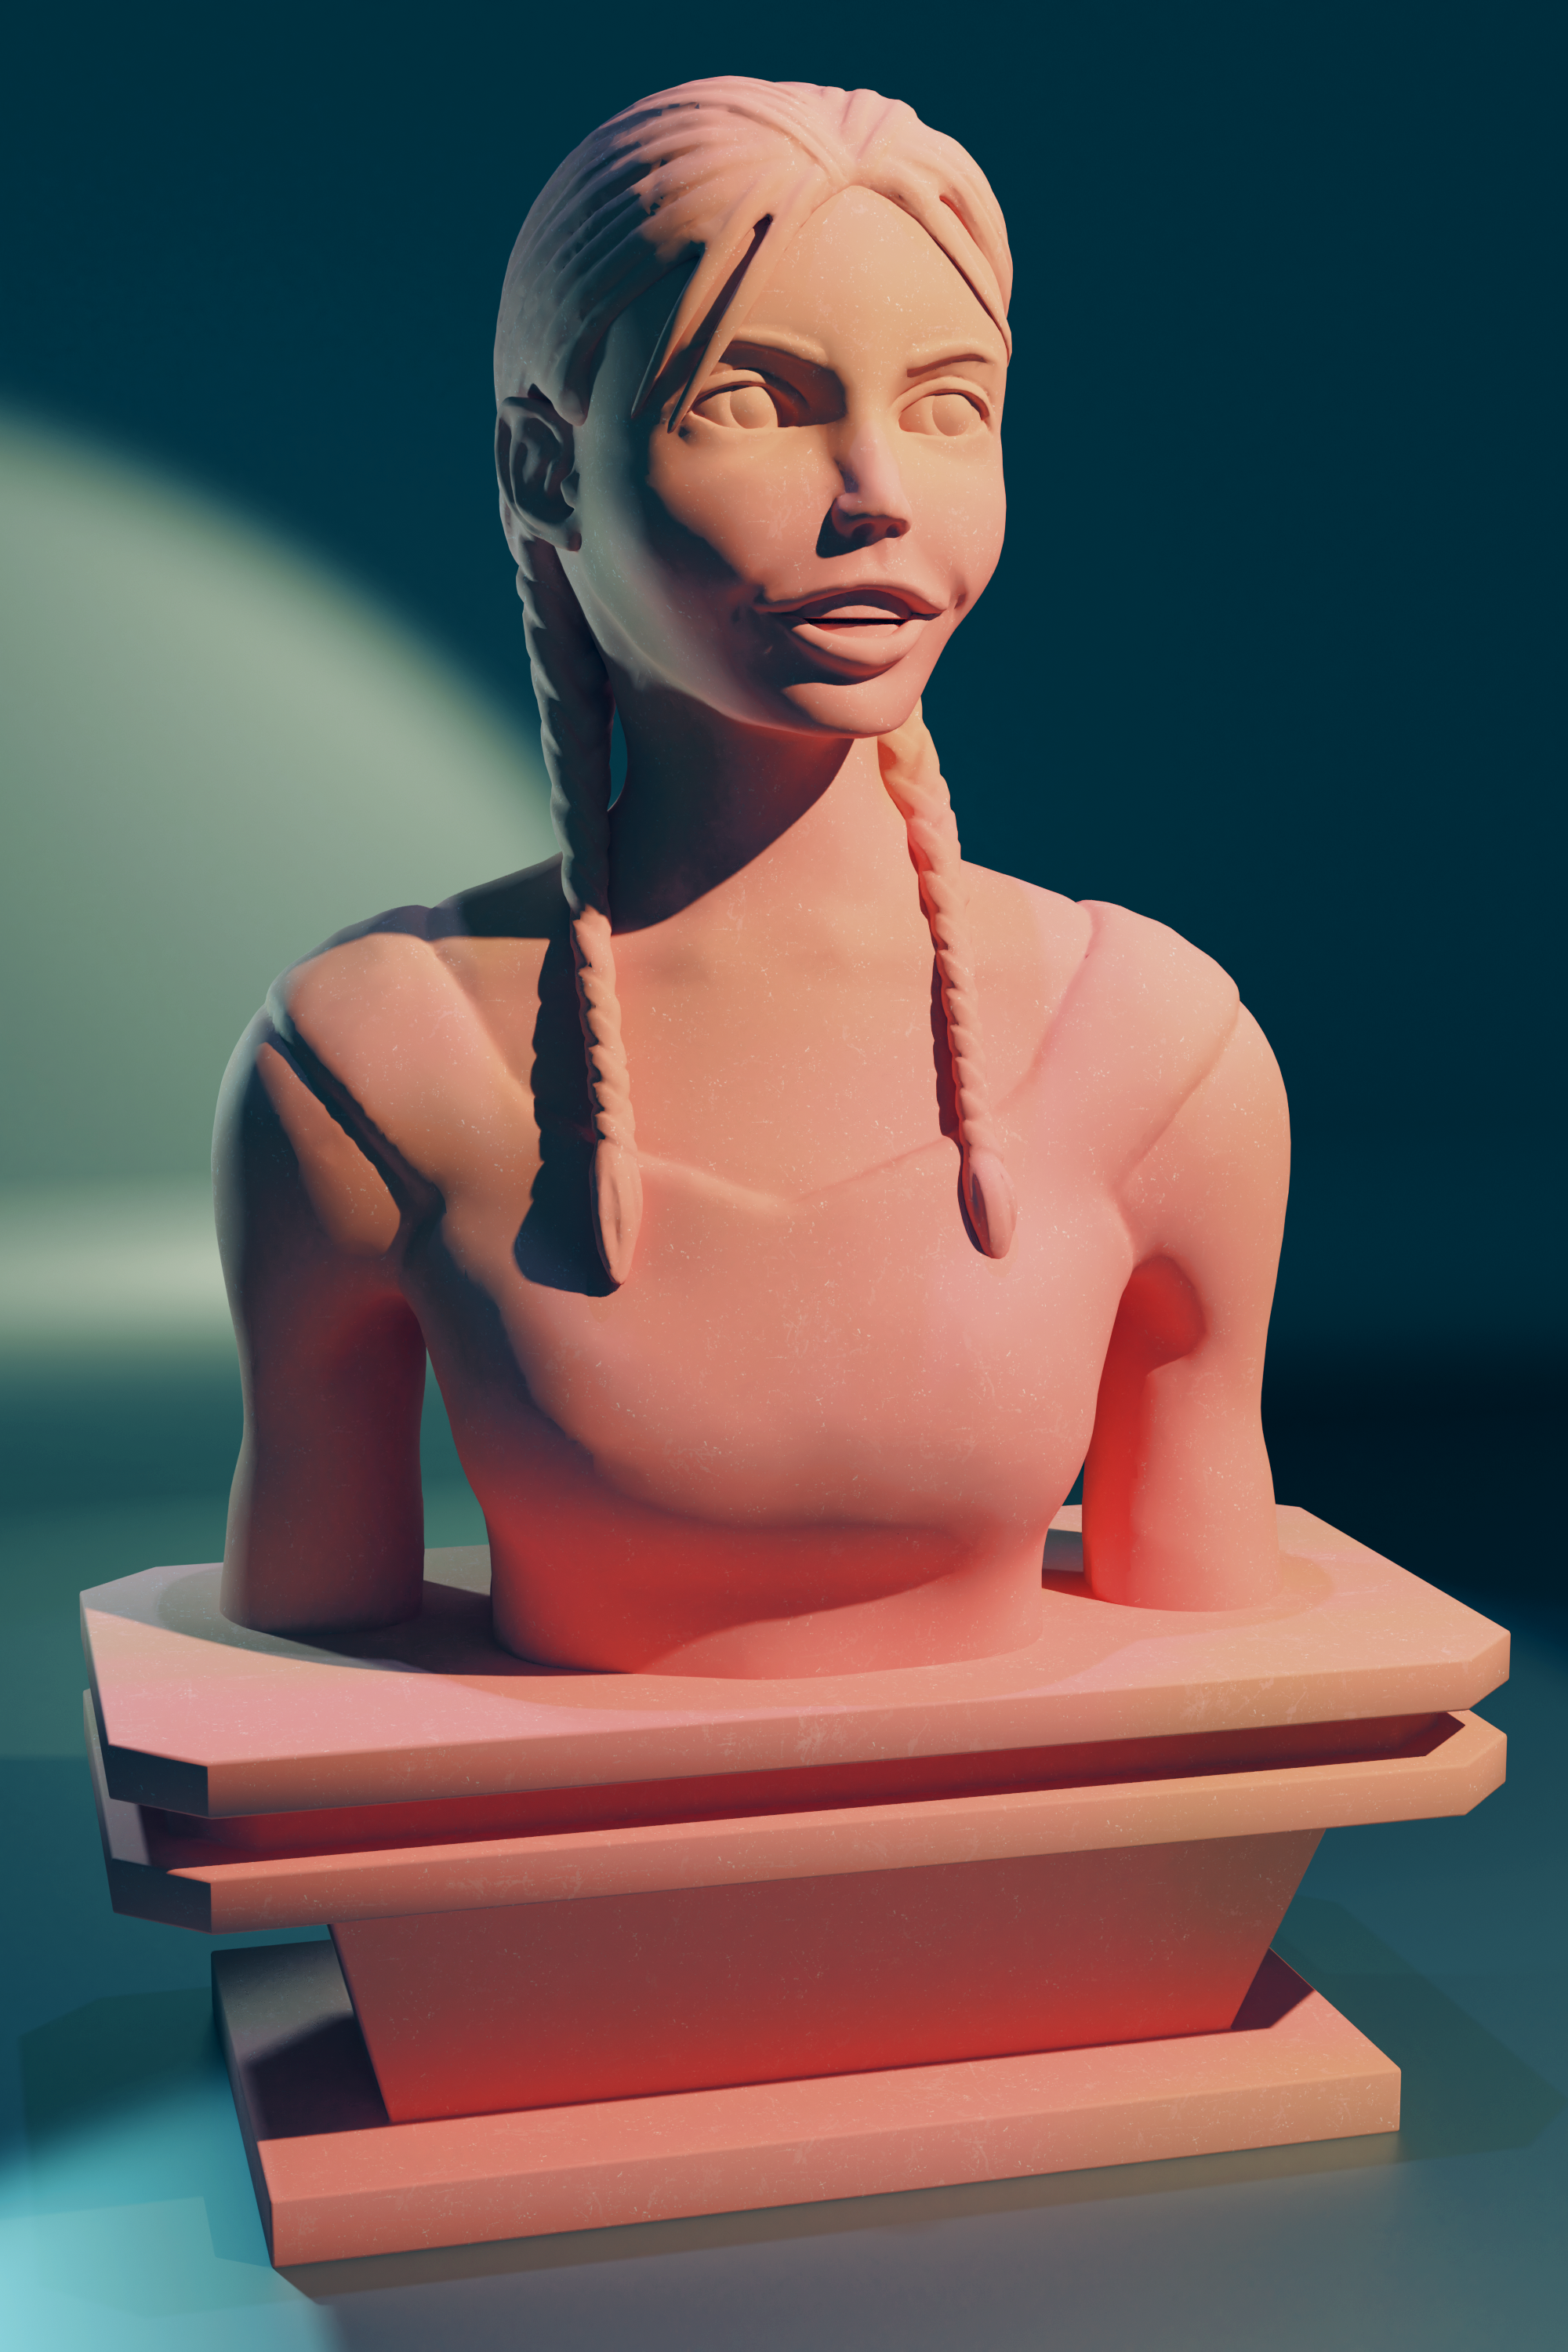 A digital sculpt of a girl